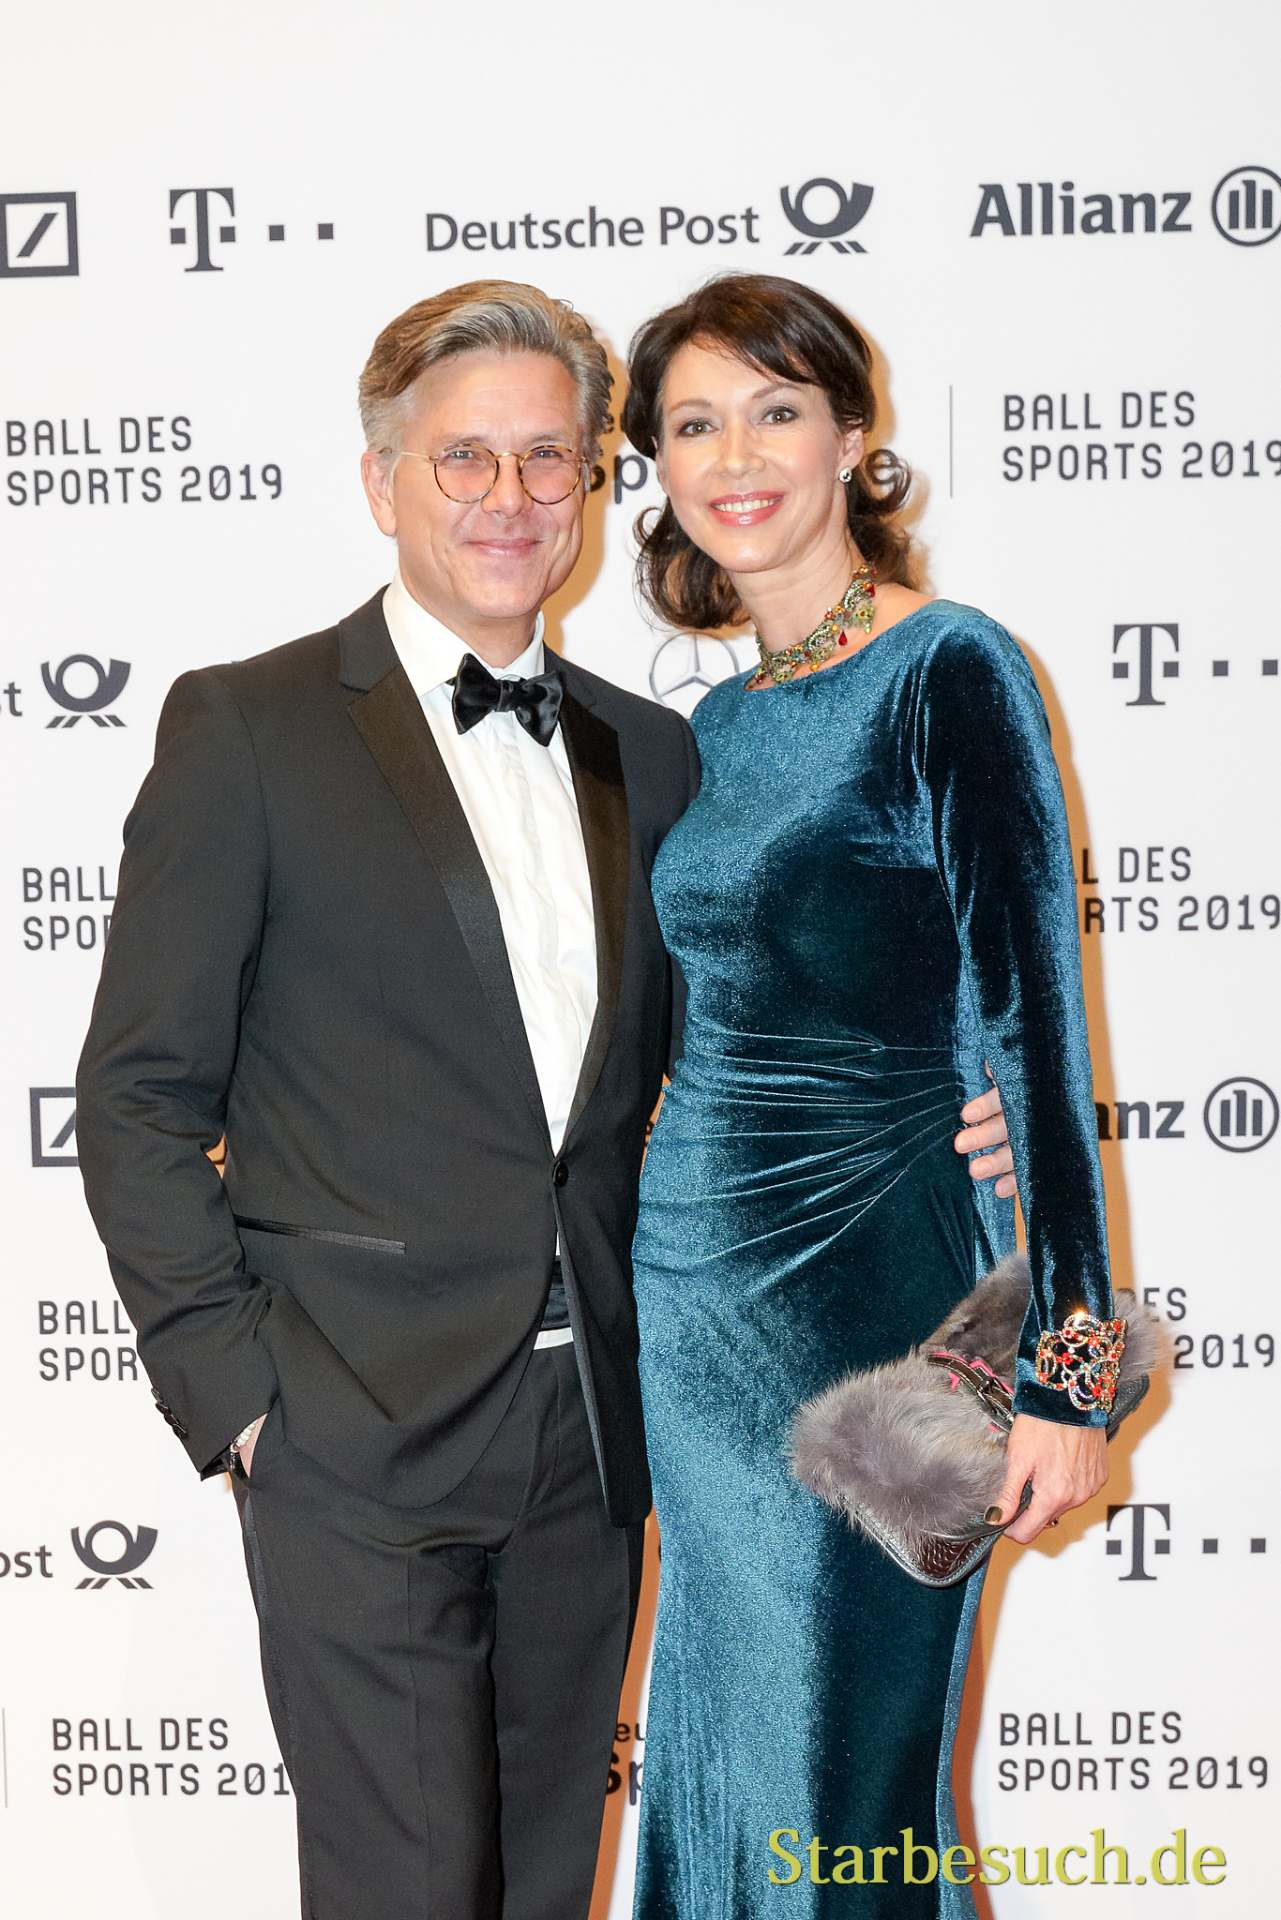 WIESBADEN, Germany - February 2nd, 2019: Percy Hoven and wife at Ball des Sports 2019